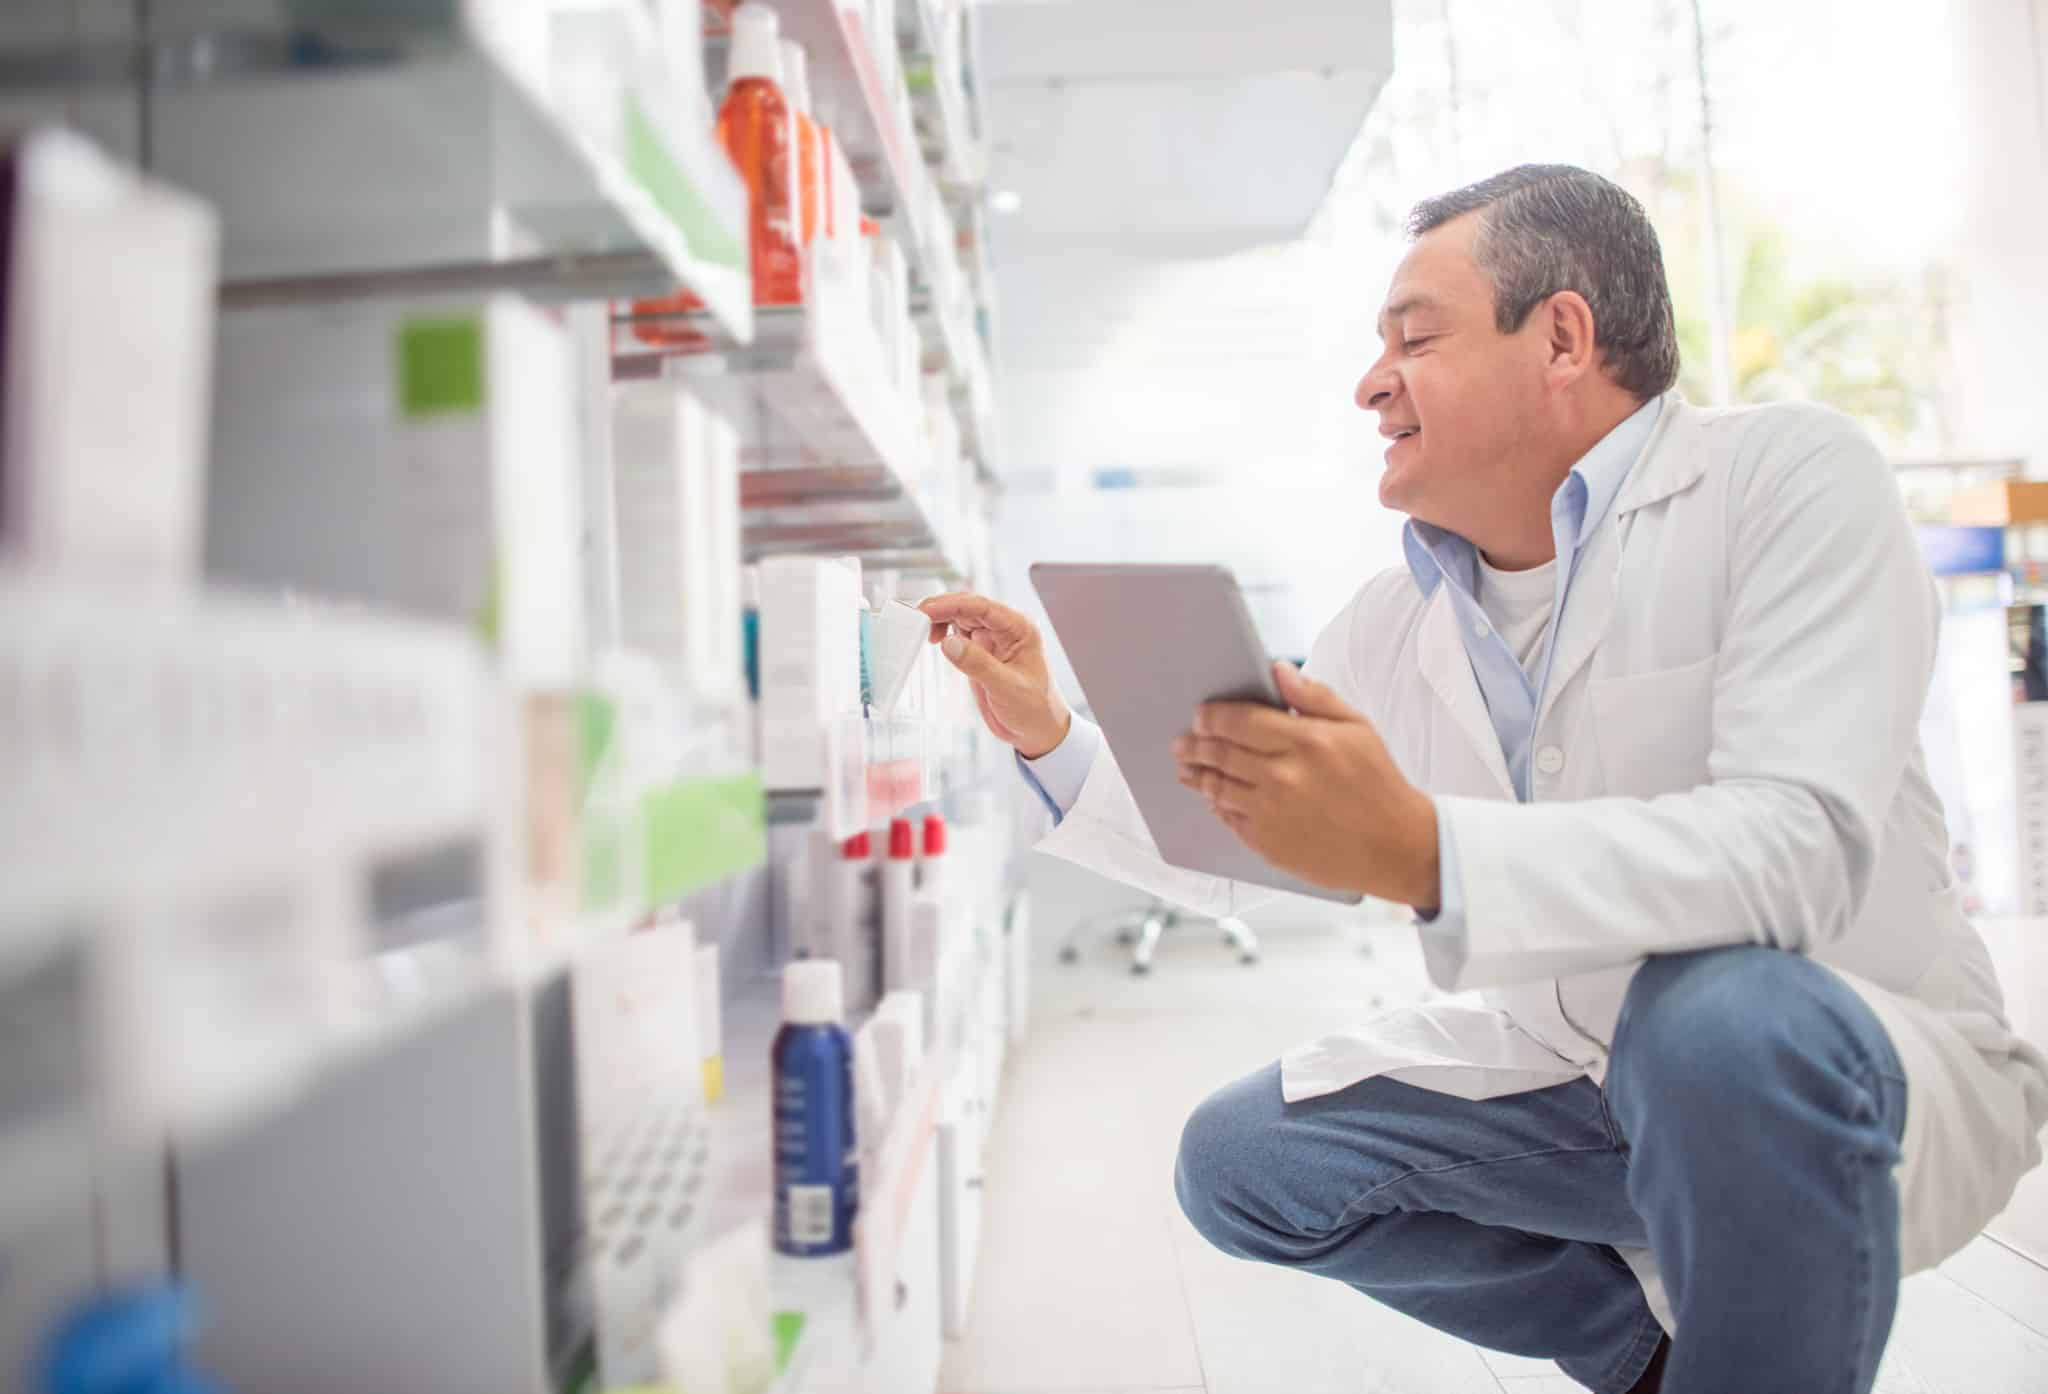 A man takes inventory on a tablet in a pharmacy.